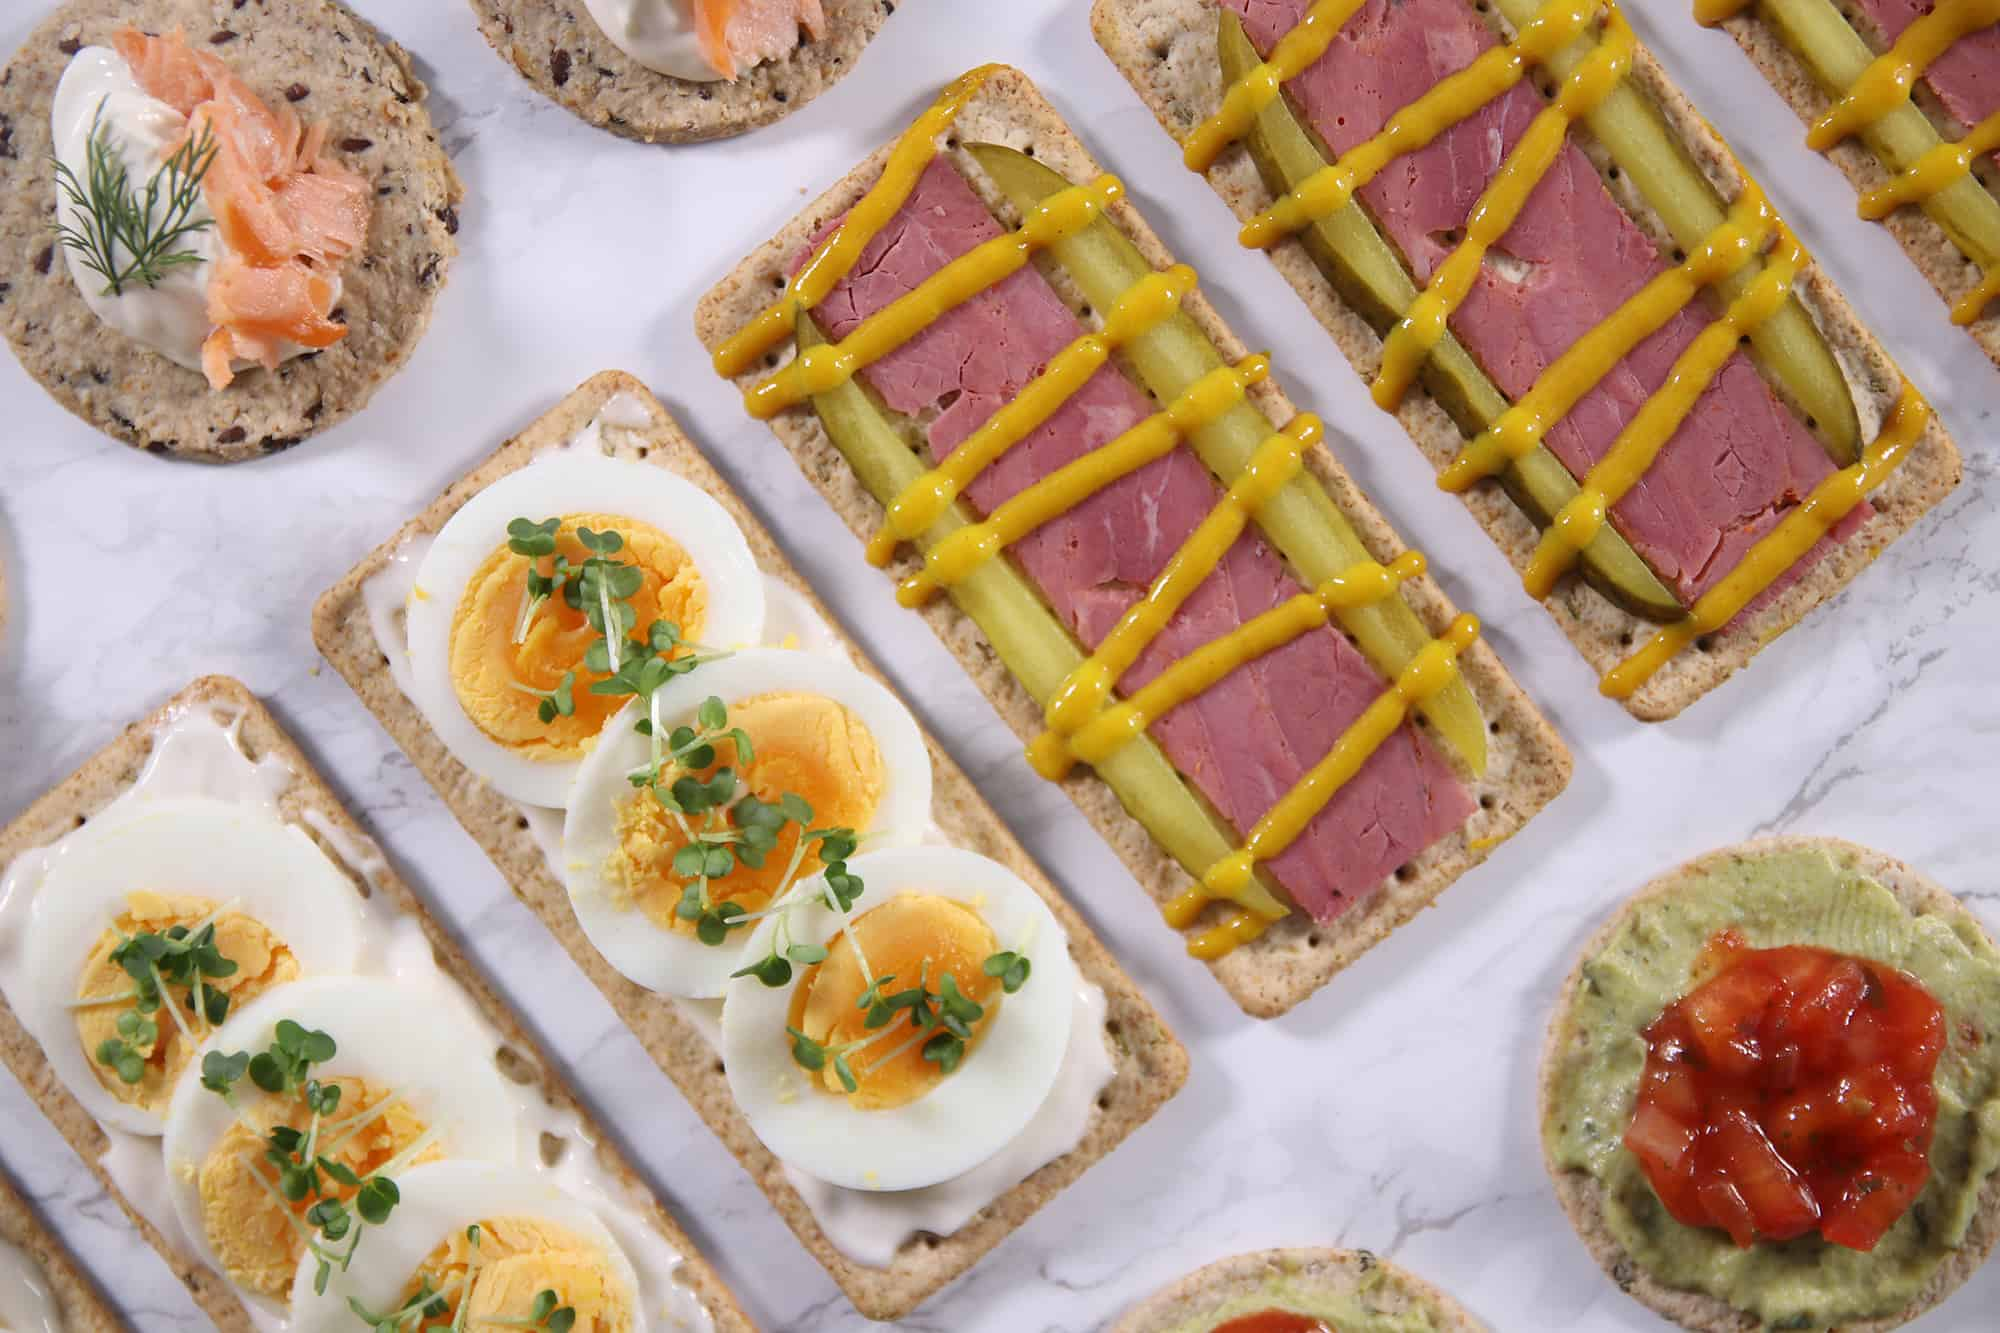 4 fancy yet simple gluten free canap ideas dairy free for Canape companies